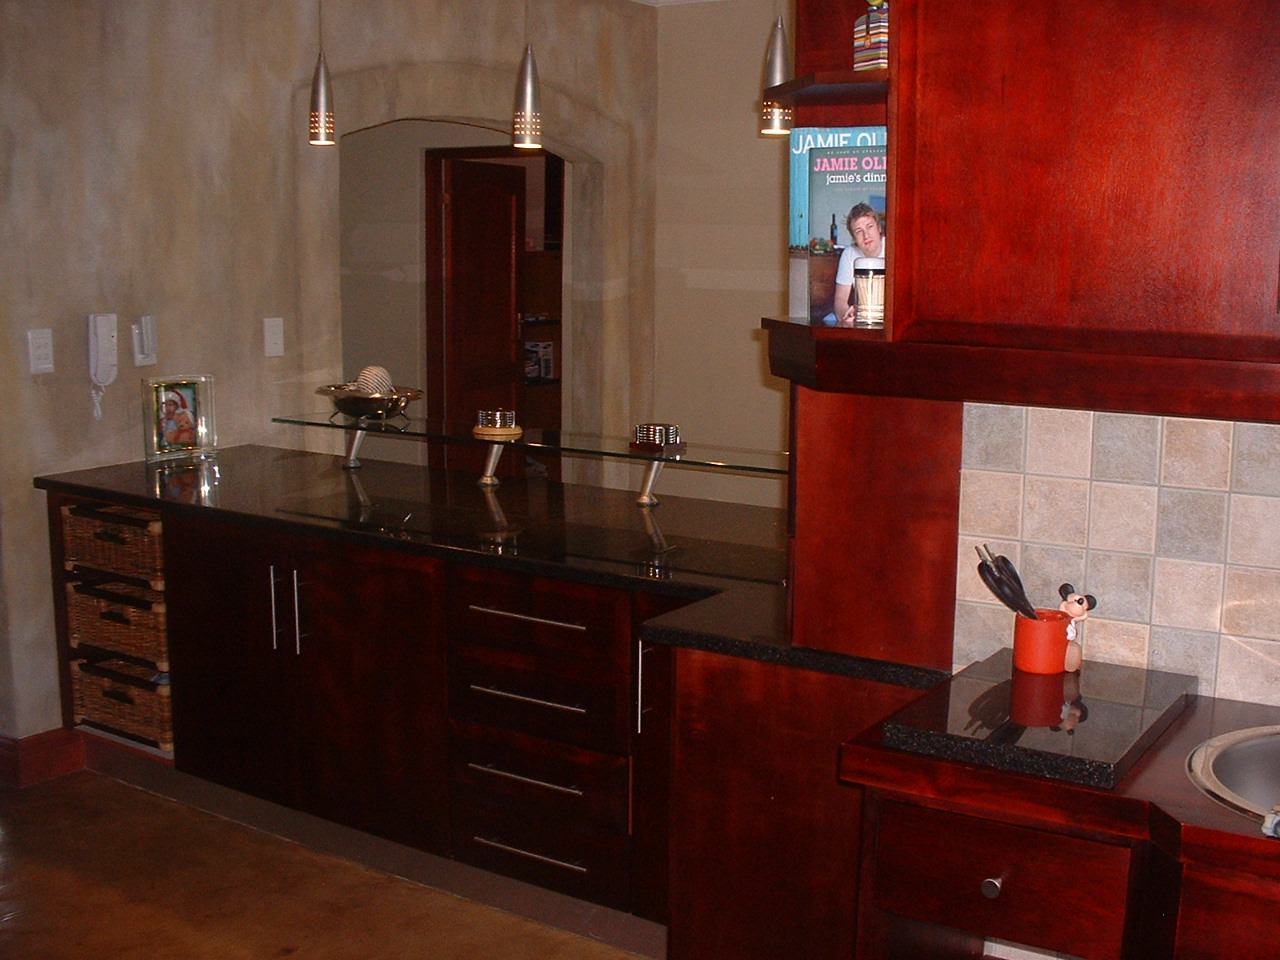 Mahogany cupboards nico 39 s kitchens for Kitchens pretoria